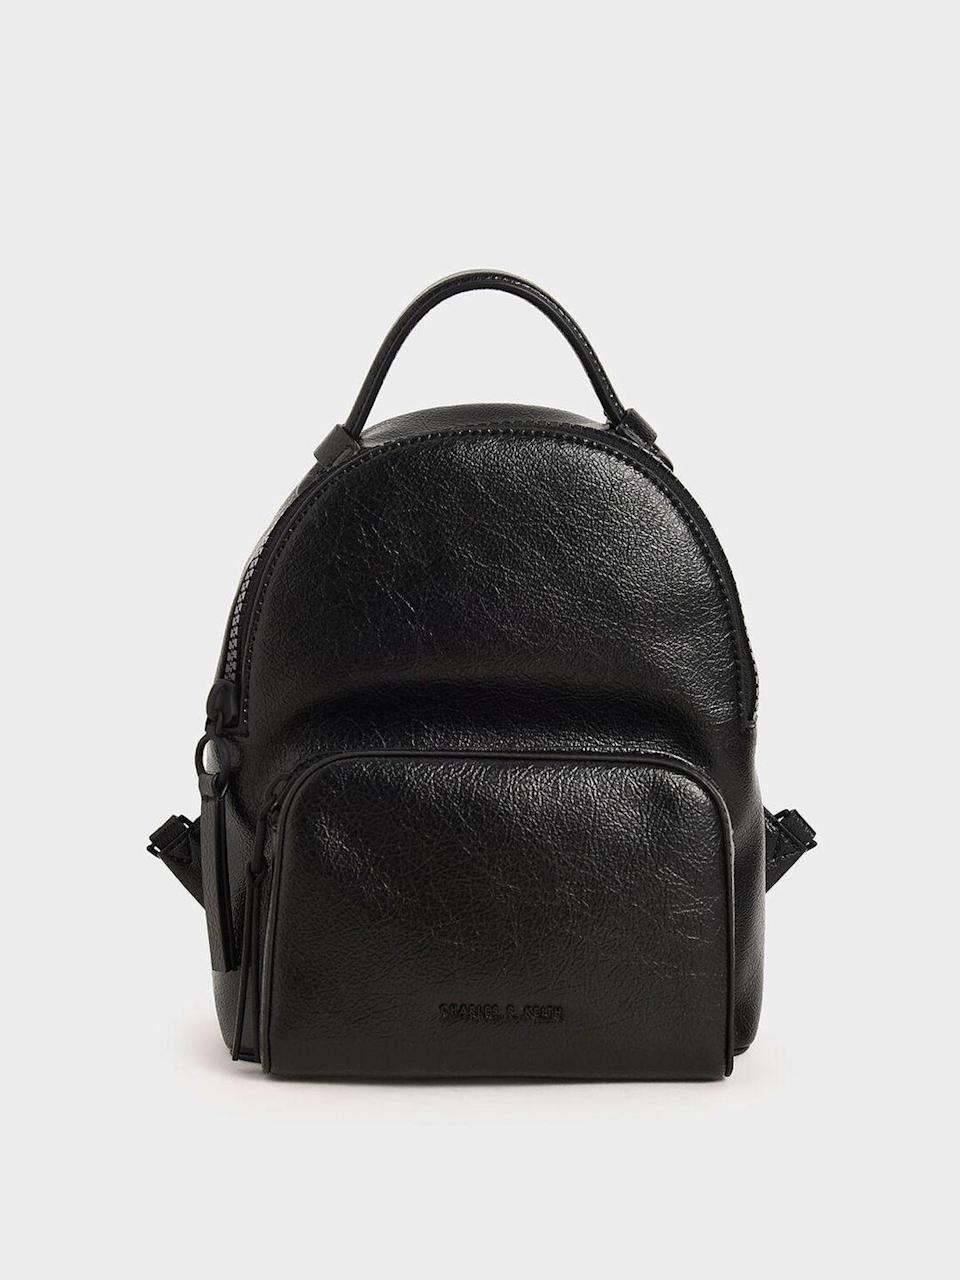 """<p><a class=""""link rapid-noclick-resp"""" href=""""https://go.redirectingat.com?id=127X1599956&url=https%3A%2F%2Fwww.charleskeith.co.uk%2Fgb%2Fbags%2FCK2-60150928_BLACK.html&sref=https%3A%2F%2Fwww.harpersbazaar.com%2Fuk%2Ffashion%2Fg28897412%2Fwork-bags-women%2F"""" rel=""""nofollow noopener"""" target=""""_blank"""" data-ylk=""""slk:SHOP NOW"""">SHOP NOW</a></p><p>No longer reserved for boy scouts and school children, the backpack has gained serious fashion credentials in recent years. Charles & Keith's faux-leather version is detailed with industrial two-way zips and has adjustable straps, as well as a top handle – so you can carry it in-hand on the tube.</p><p>Faux leather backpack, £59, <a href=""""https://go.redirectingat.com?id=127X1599956&url=https%3A%2F%2Fwww.charleskeith.co.uk%2Fgb%2FSL2-10270289.html%3Fdwvar_SL2-10270289_color%3D01&sref=https%3A%2F%2Fwww.harpersbazaar.com%2Fuk%2Ffashion%2Fg28897412%2Fwork-bags-women%2F"""" rel=""""nofollow noopener"""" target=""""_blank"""" data-ylk=""""slk:Charles & Keith"""" class=""""link rapid-noclick-resp"""">Charles & Keith</a></p>"""